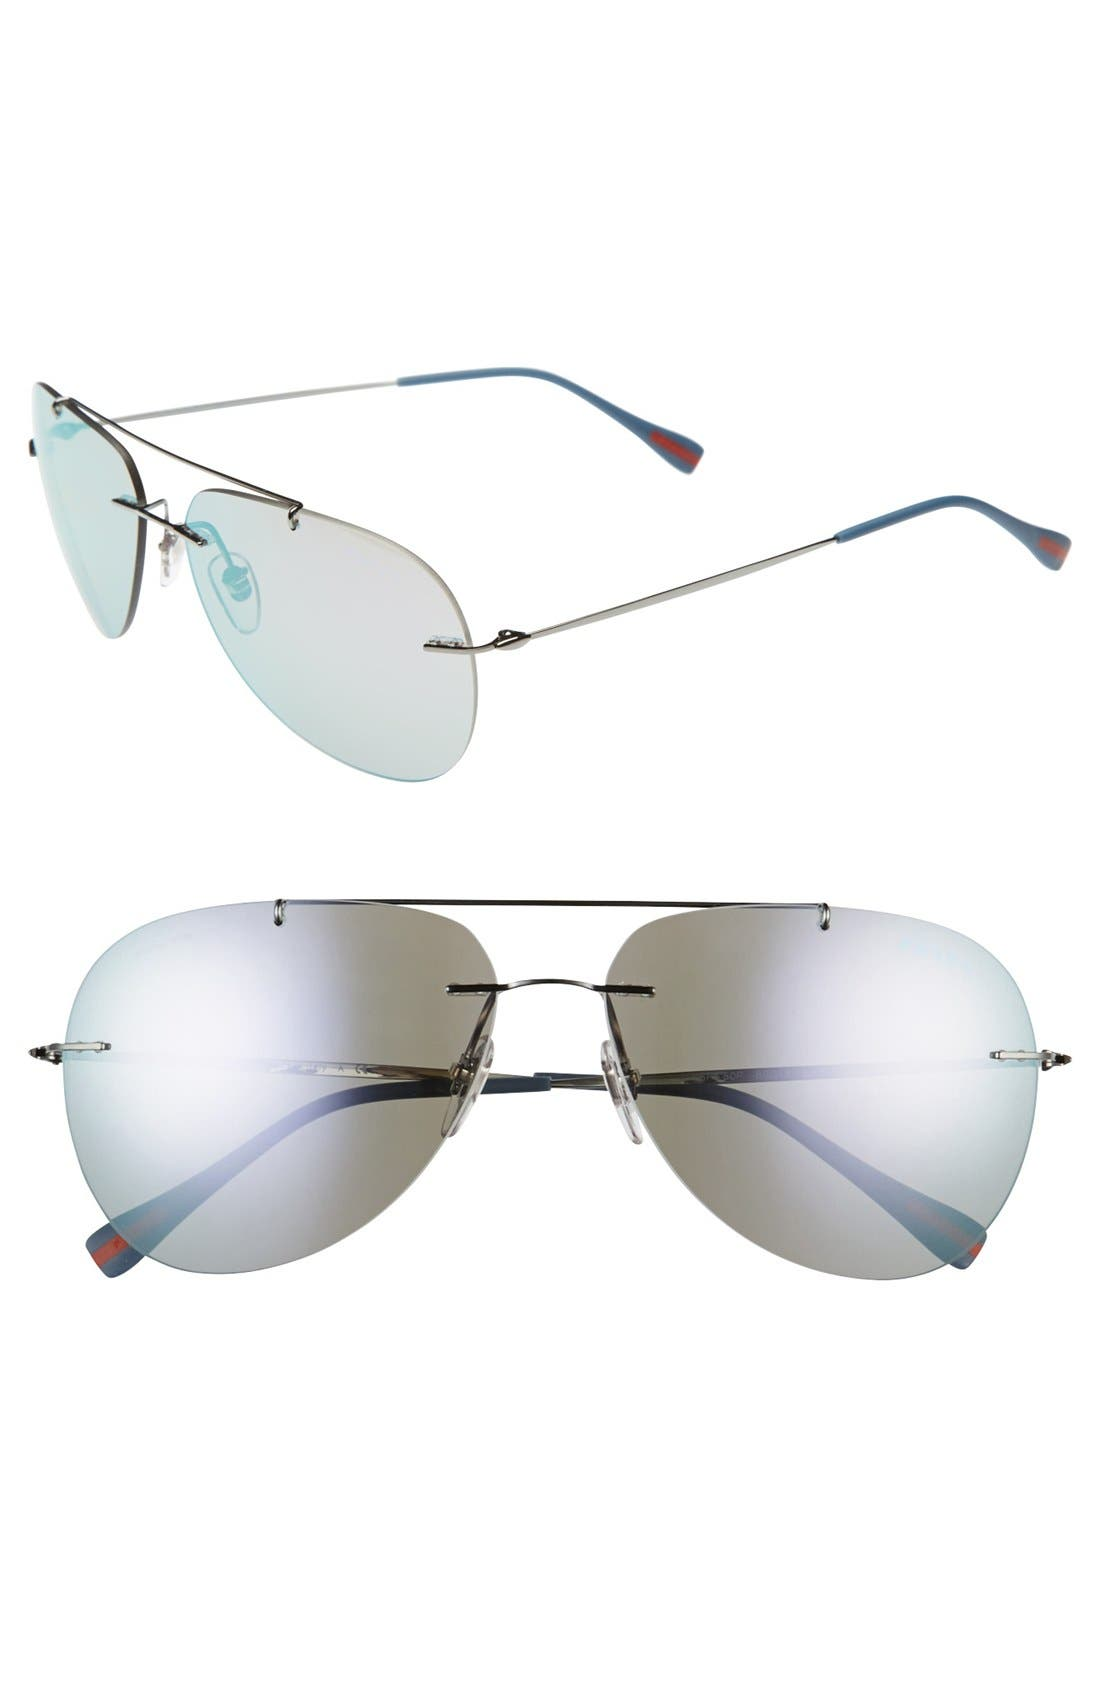 Alternate Image 1 Selected - Prada 'Pilot' 60mm Rimless Sunglasses